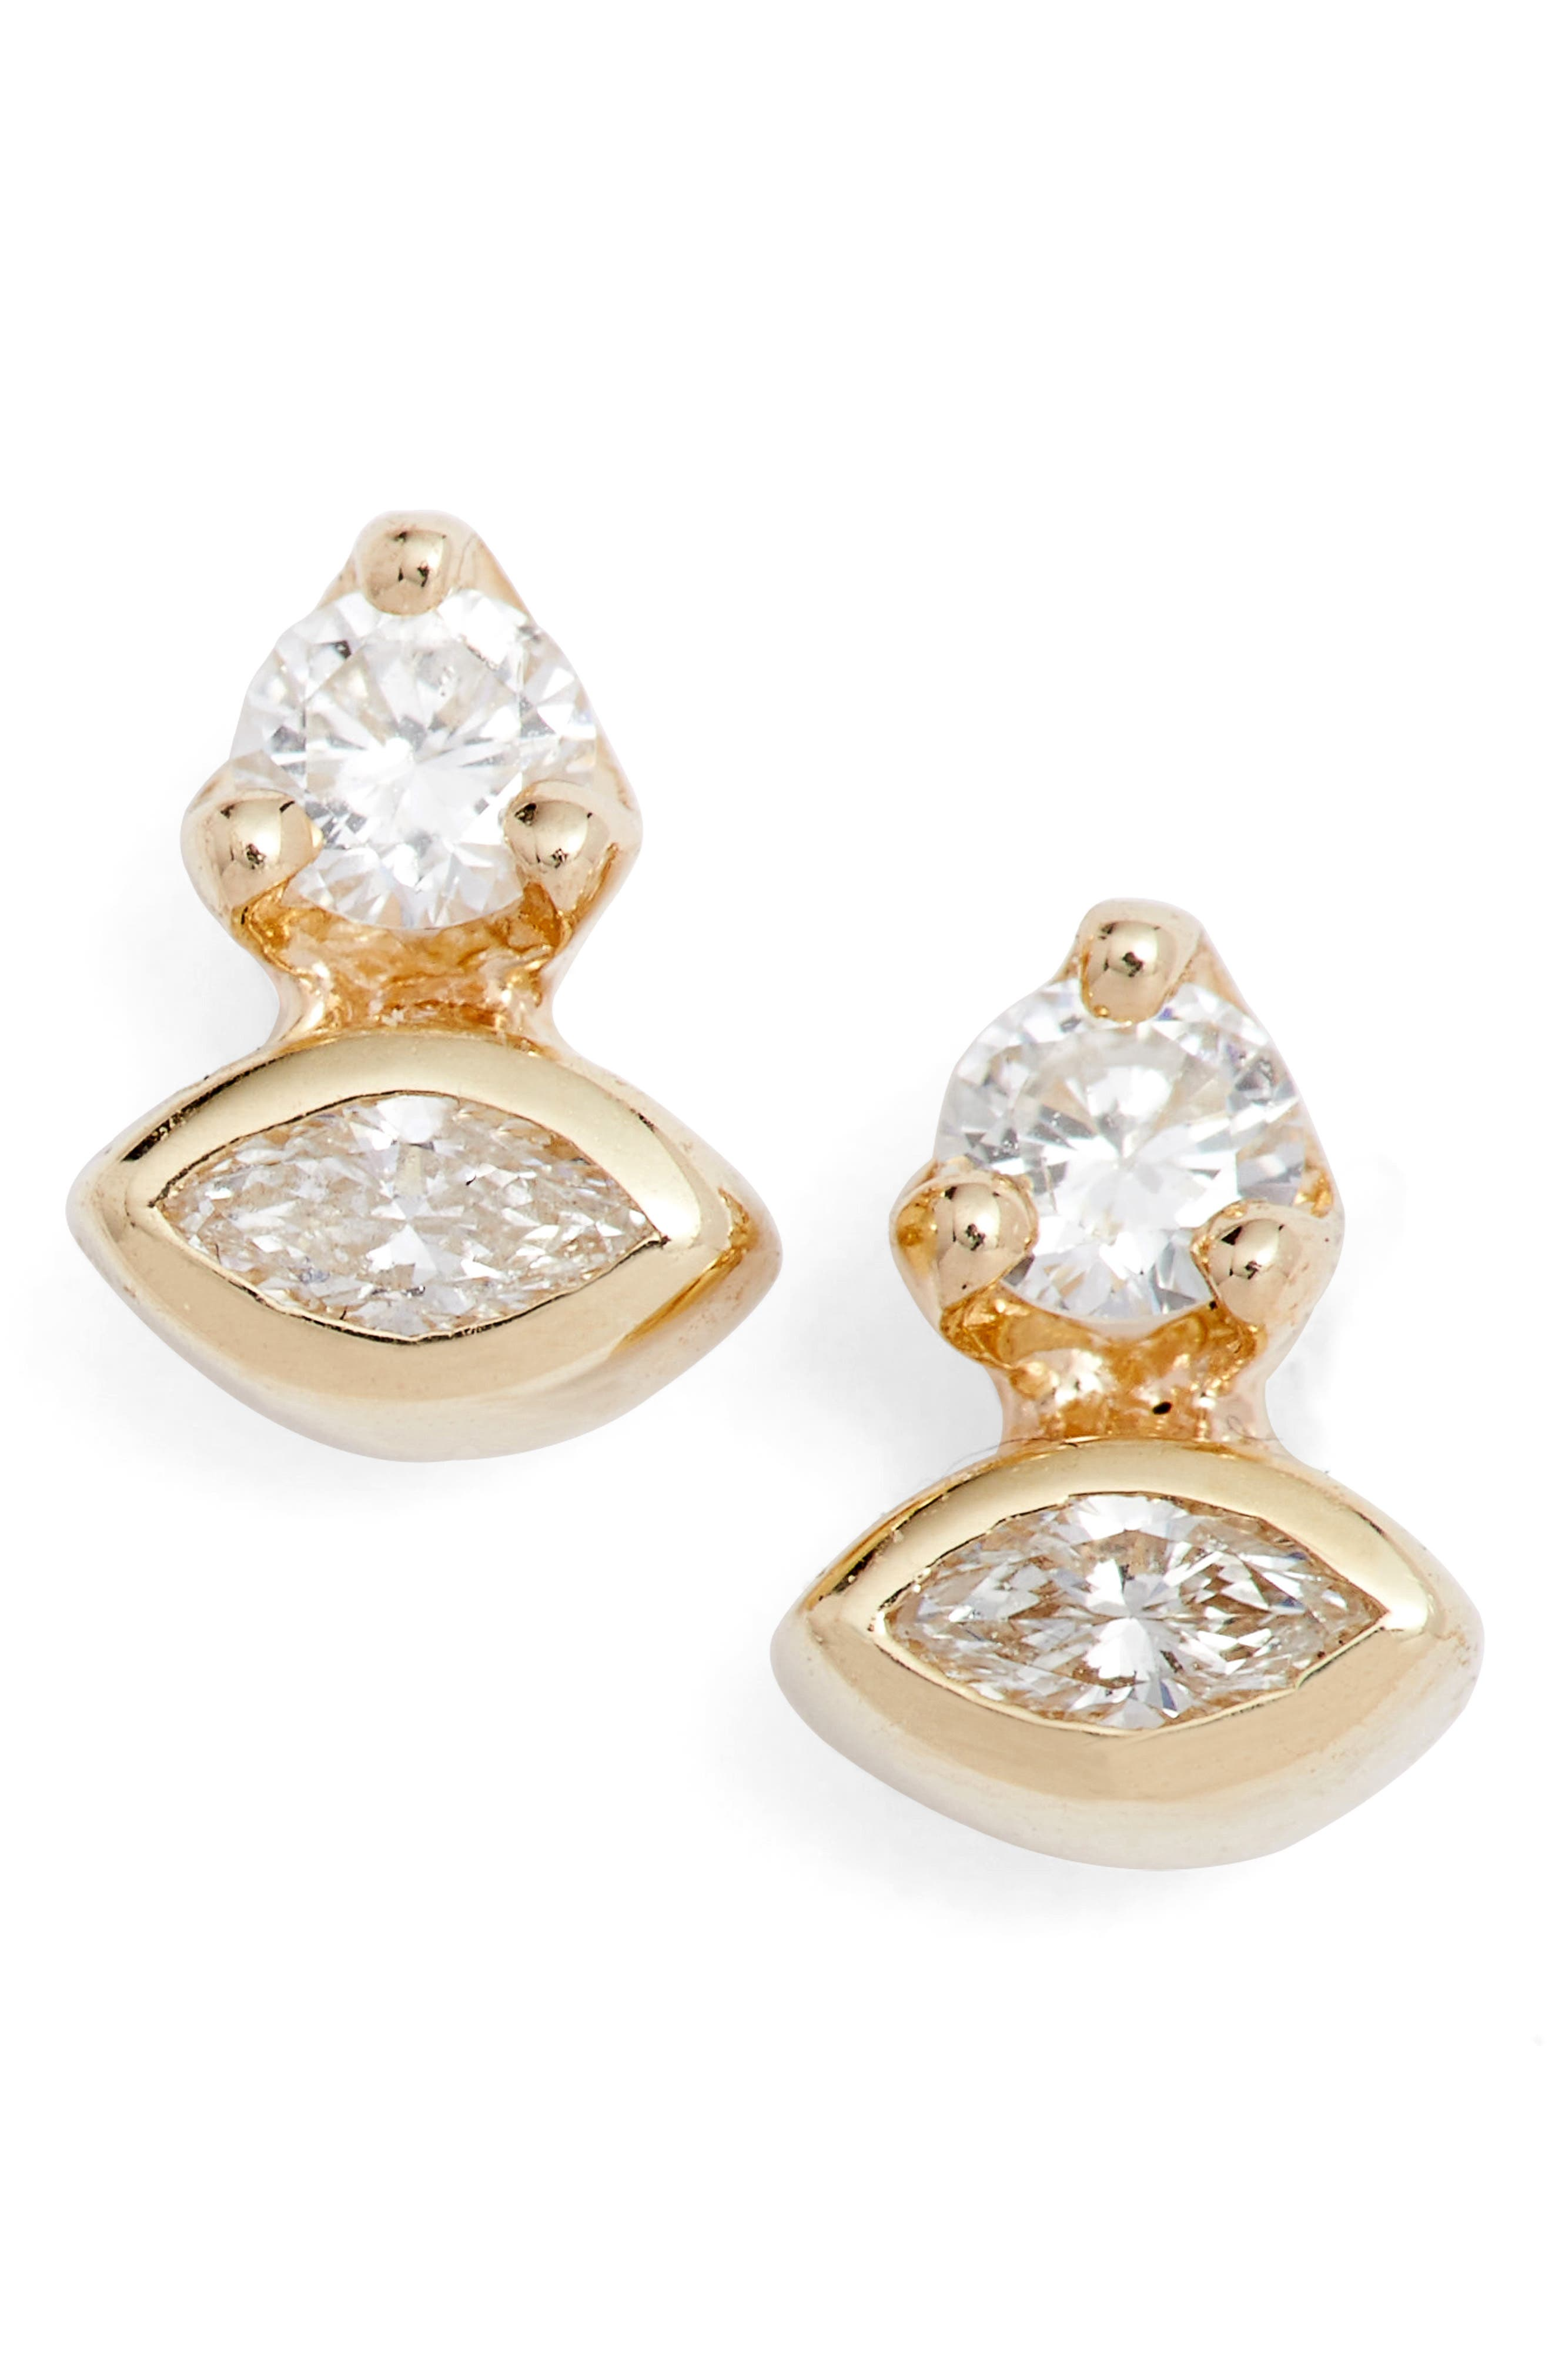 Diamond Cluster Stud Earrings,                         Main,                         color, YELLOW GOLD